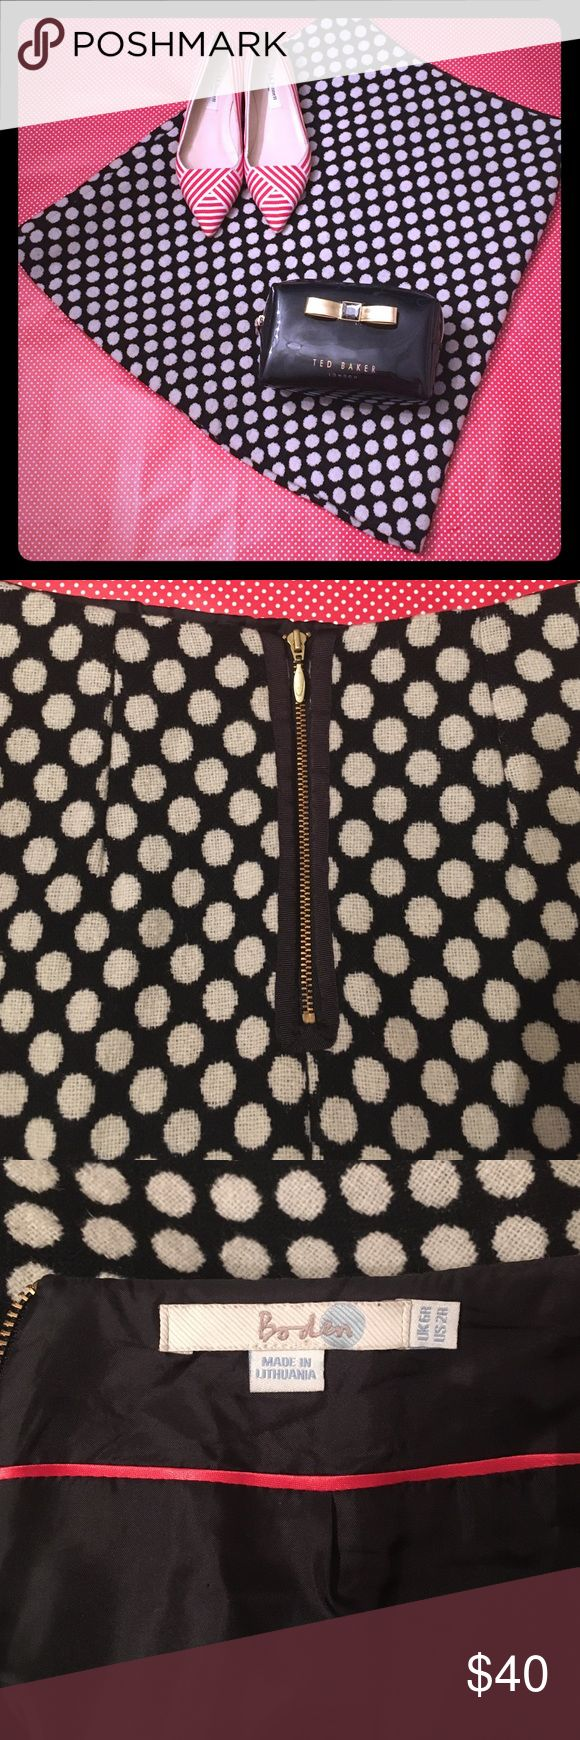 """❤️BODEN Wool-Blend Polka-Dot Skirt❤️ ❣️Think winter skirts can't be girly and flirty and fun? Think again! ❣️This A-line confection has dots woven into the substantial fabric and has a chic exposed gold zipper in back! Contrast pink piping on full inner lining means it's fun from the inside out! Functional slash pockets for girls on the go. Just under 20.5"""" long; waist 13"""" flat; hips (across bottom of zipper) about 17"""" flat. Boden Skirts A-Line or Full"""